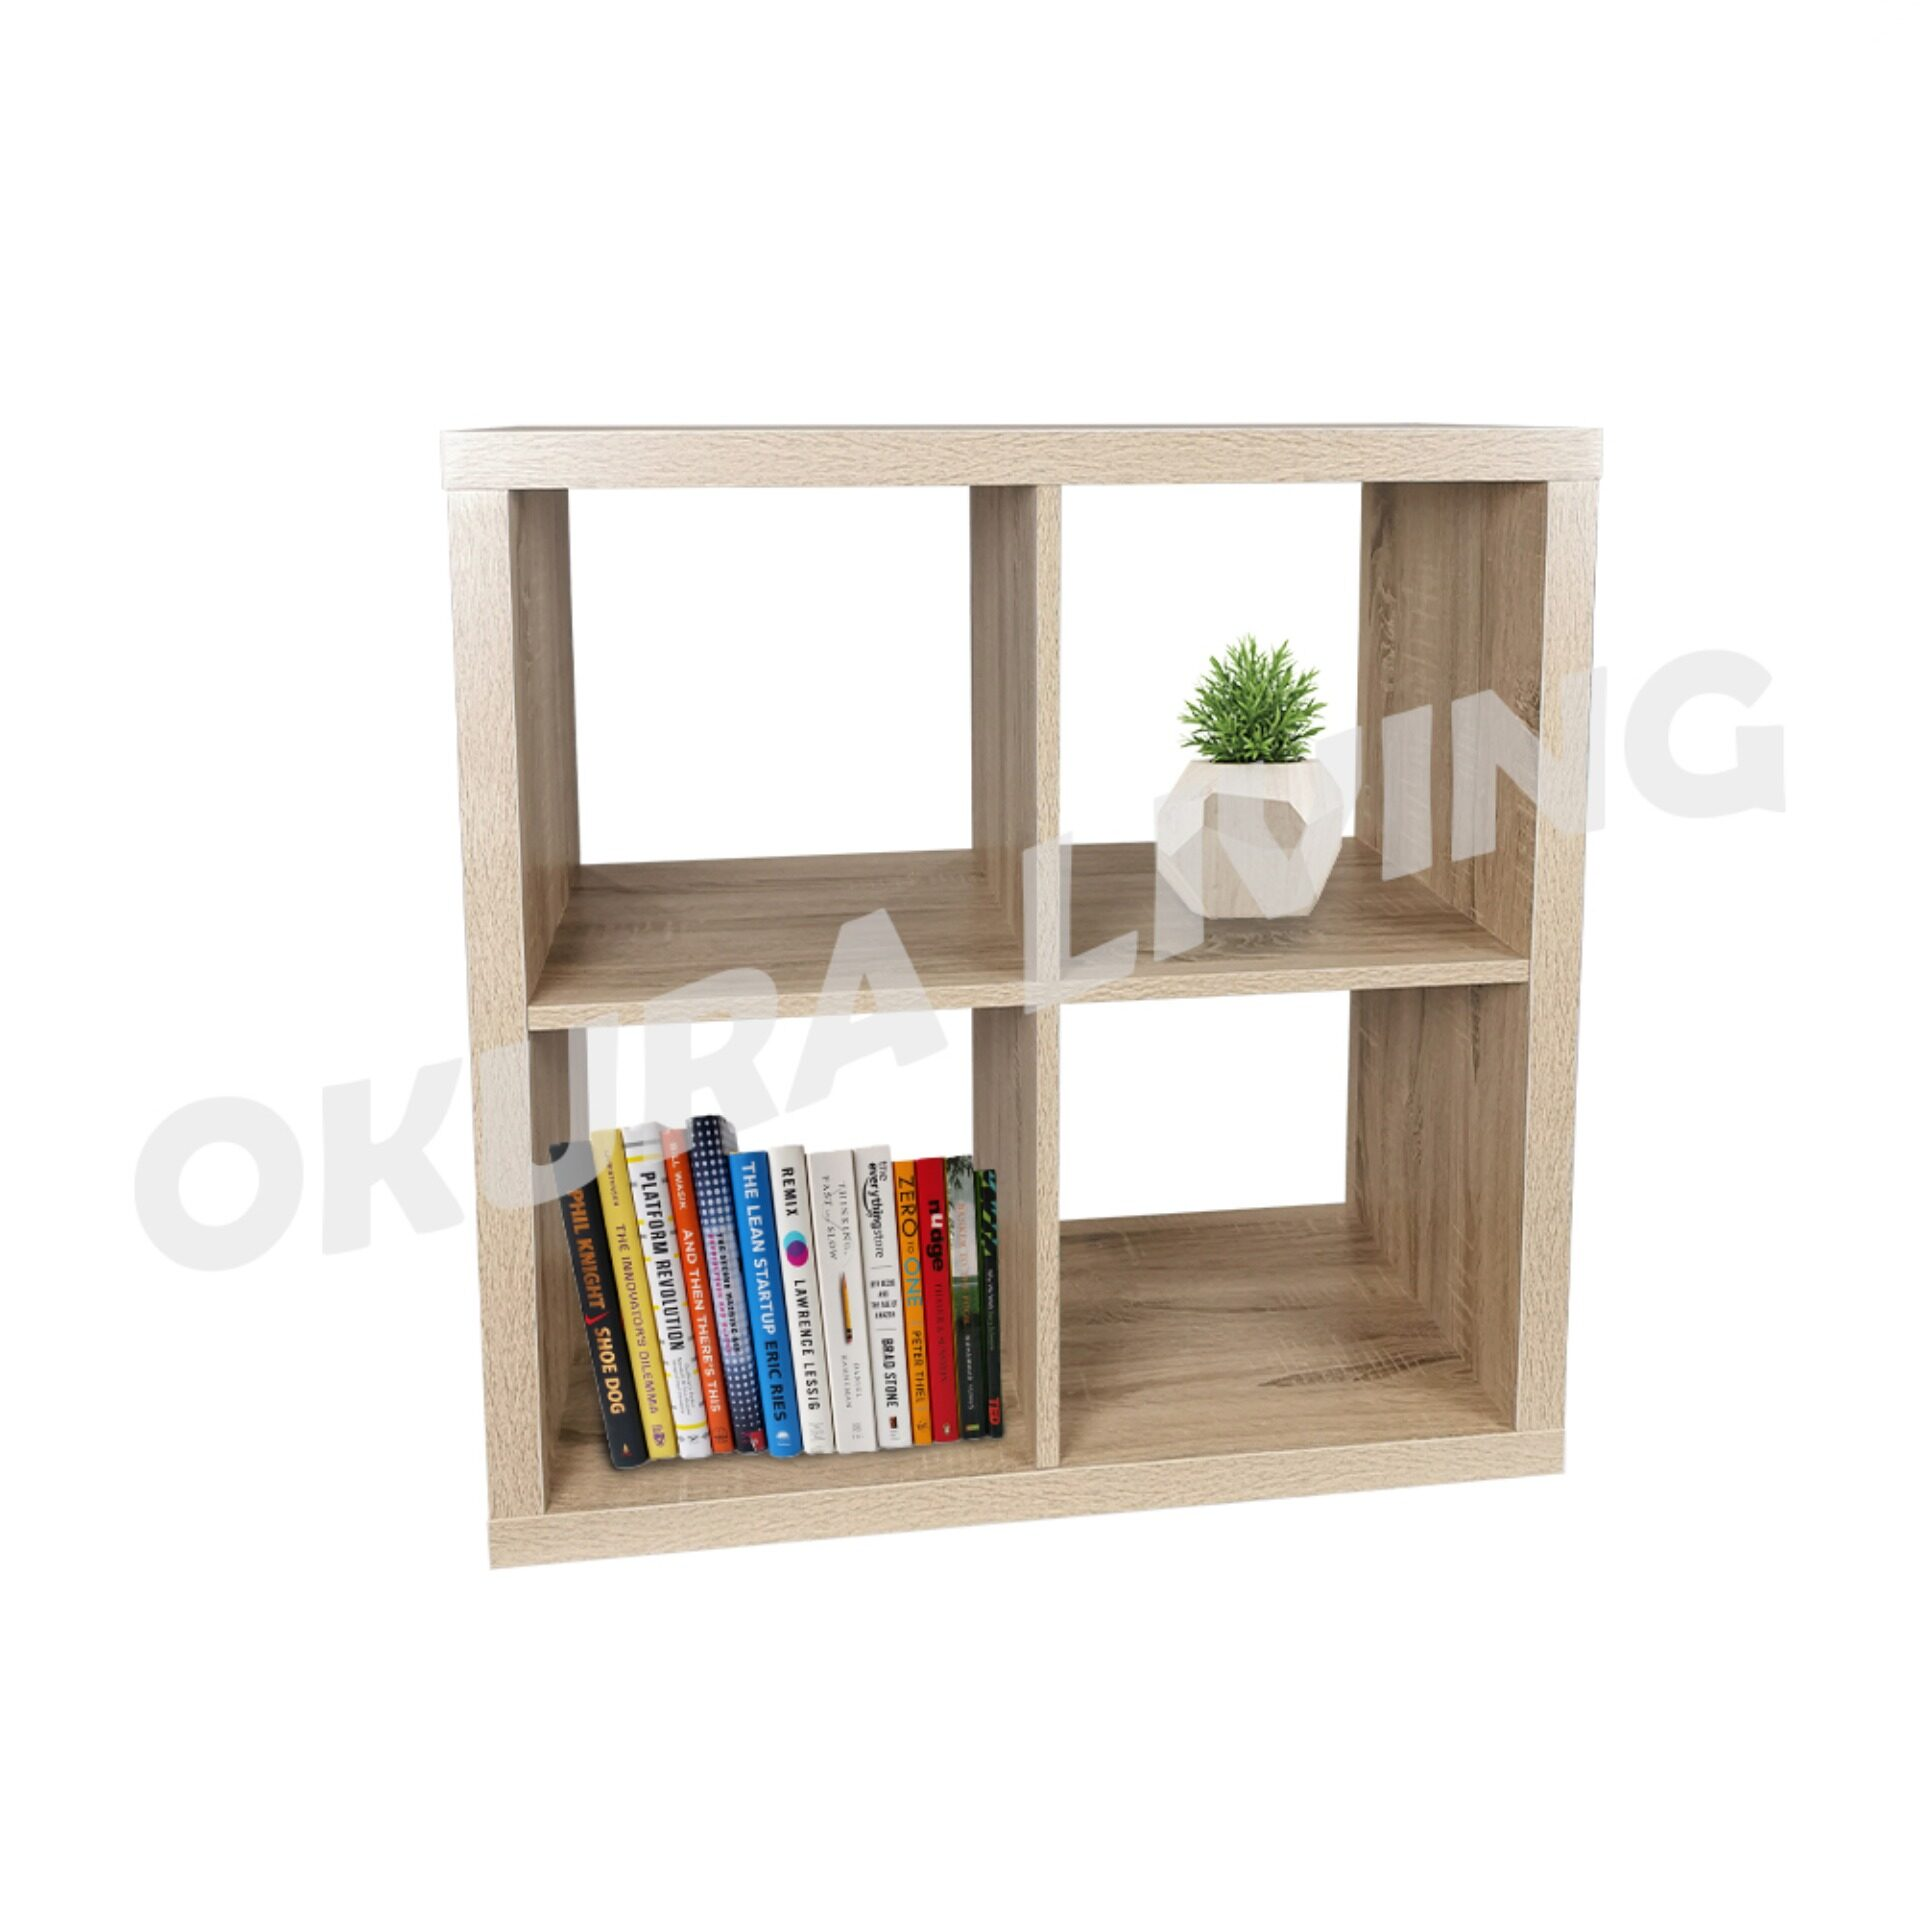 OKURA 4 Cubes Organiser Shelf Modern Home Living (White Melamine Finished)